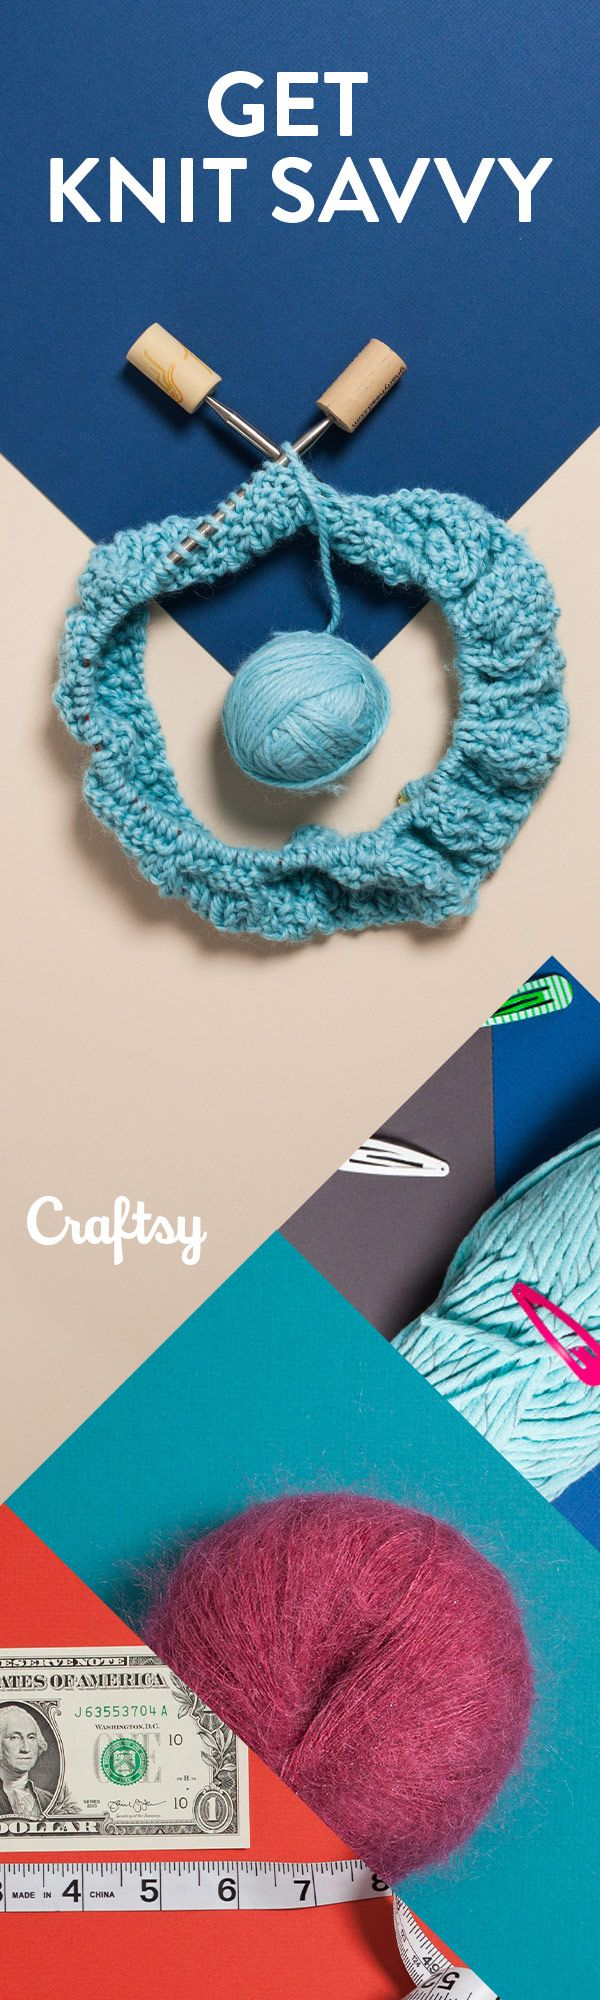 Knitting Or Crocheting Classes : Best images about crochet therapy on pinterest free